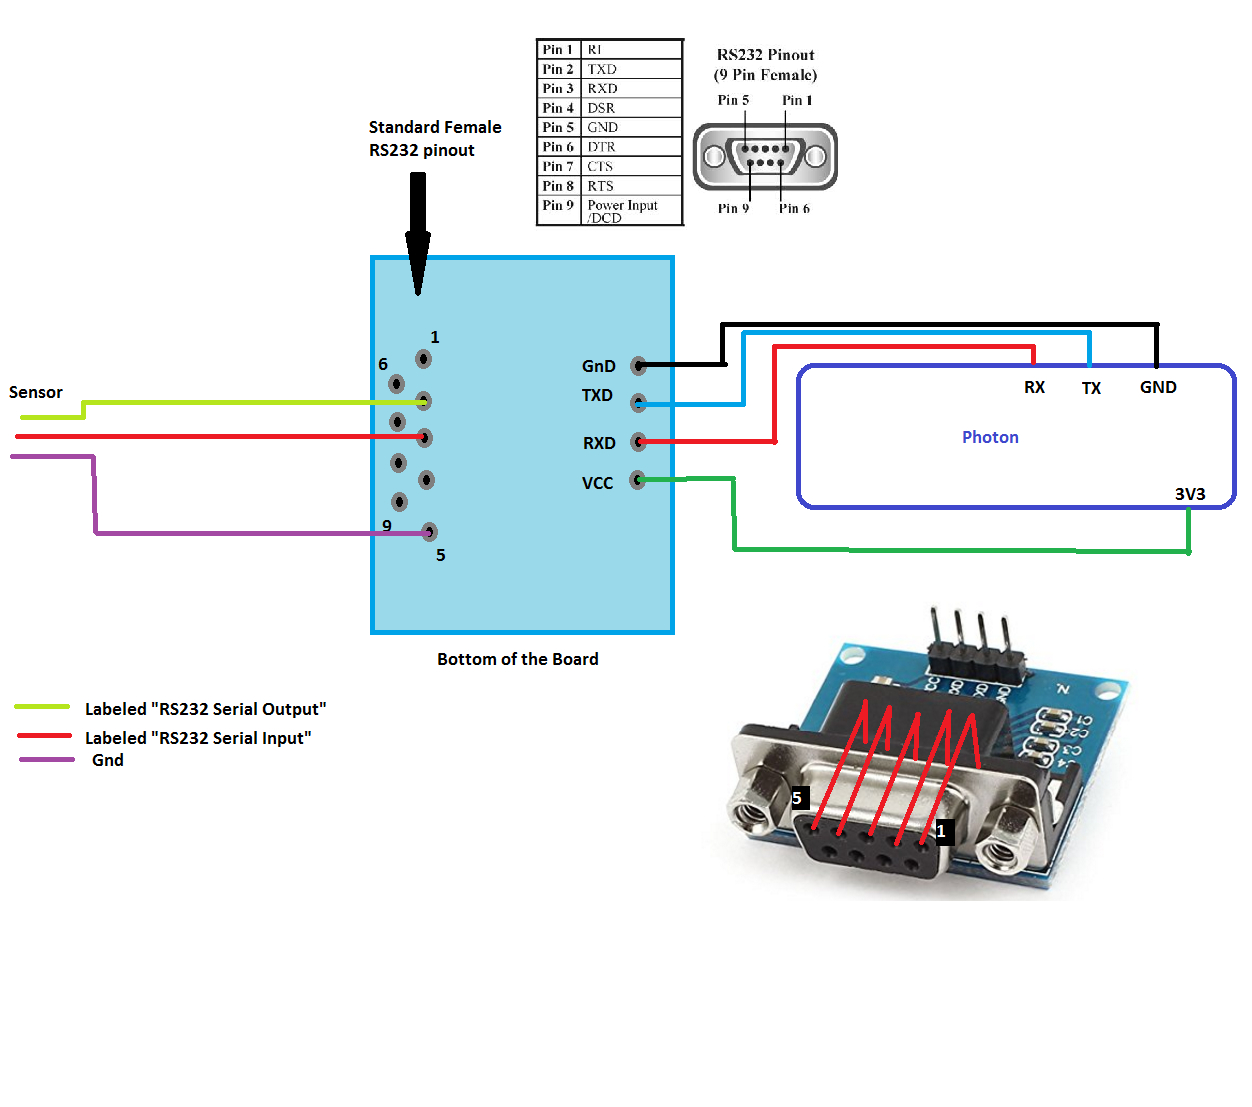 Rs232 Converter Only Works When I Cross The Wires - Hardware - Particle - Wiring Diagram Change 6 Pin Din Plug To Usb